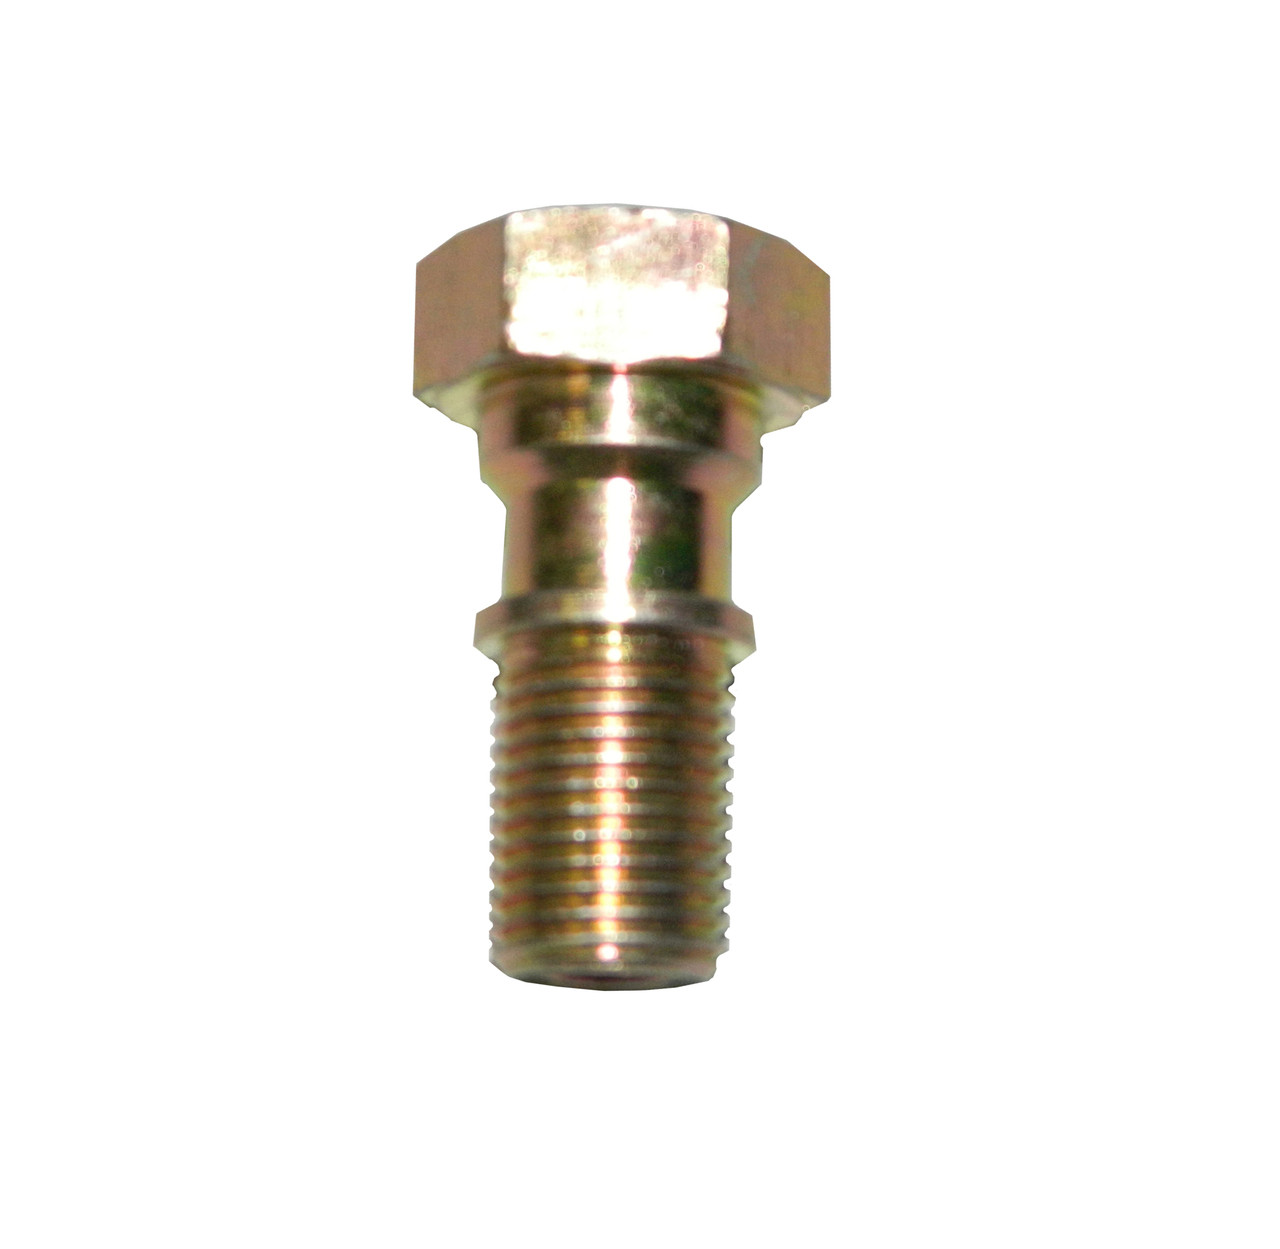 1834 --- Connector bolt for Hydro-Act Master Cylinder